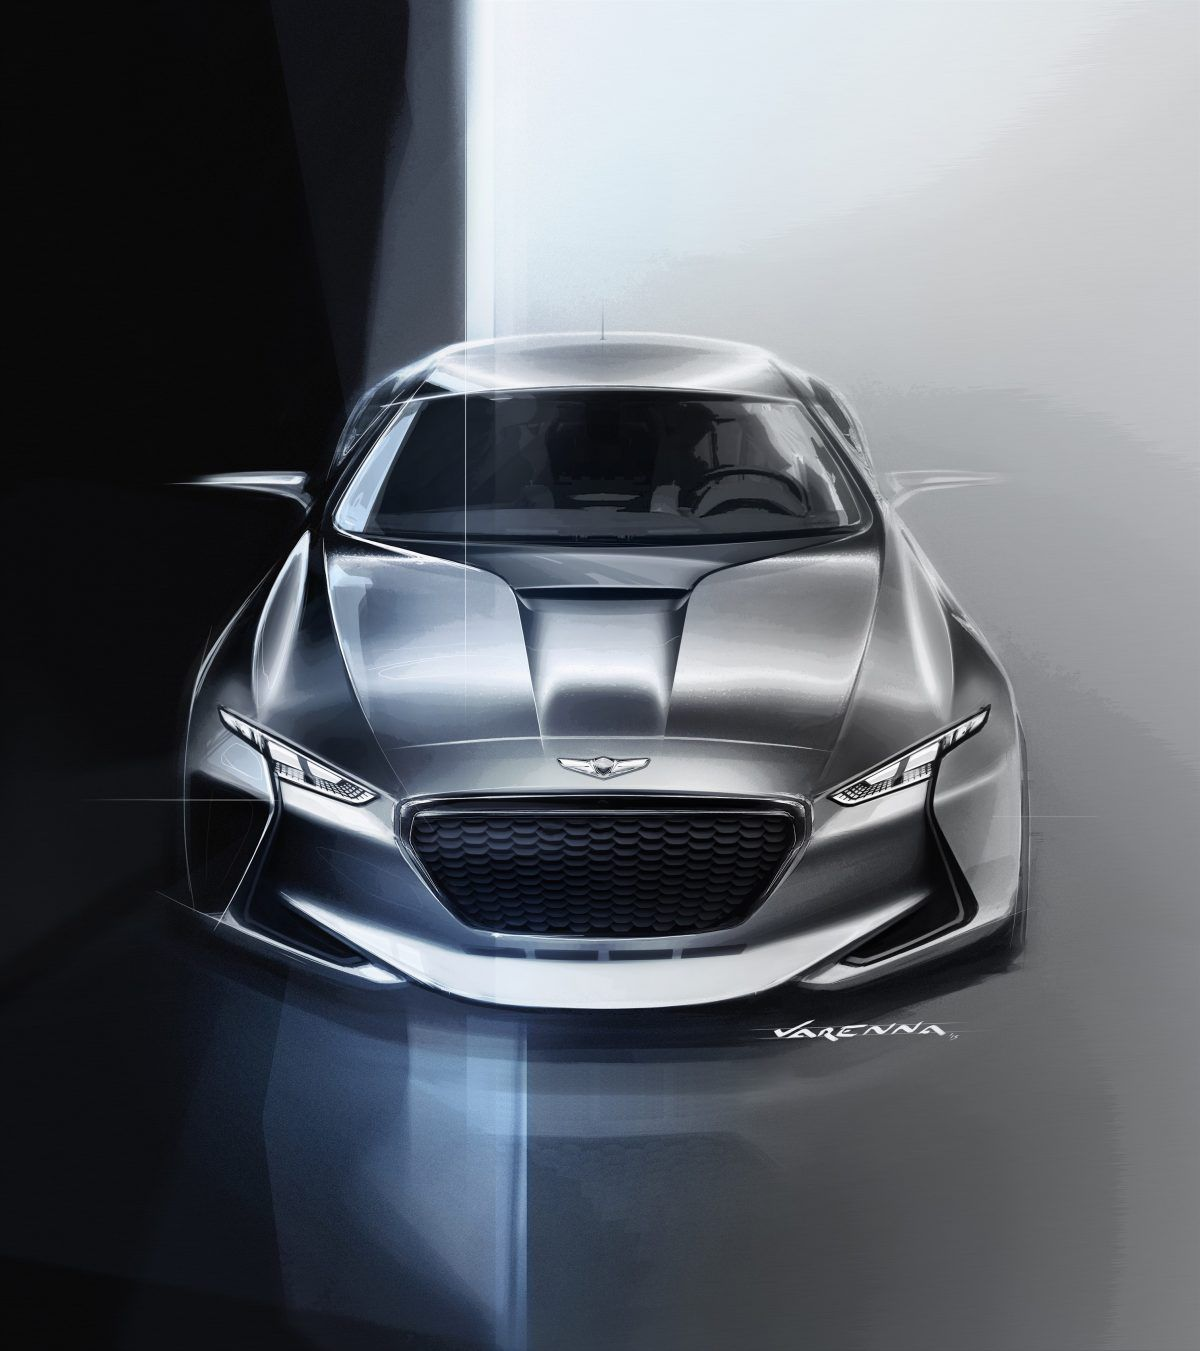 Top 20 Cars Coming Out Before 2020 New Luxury Cars Lamborghini Sports Cars Luxury